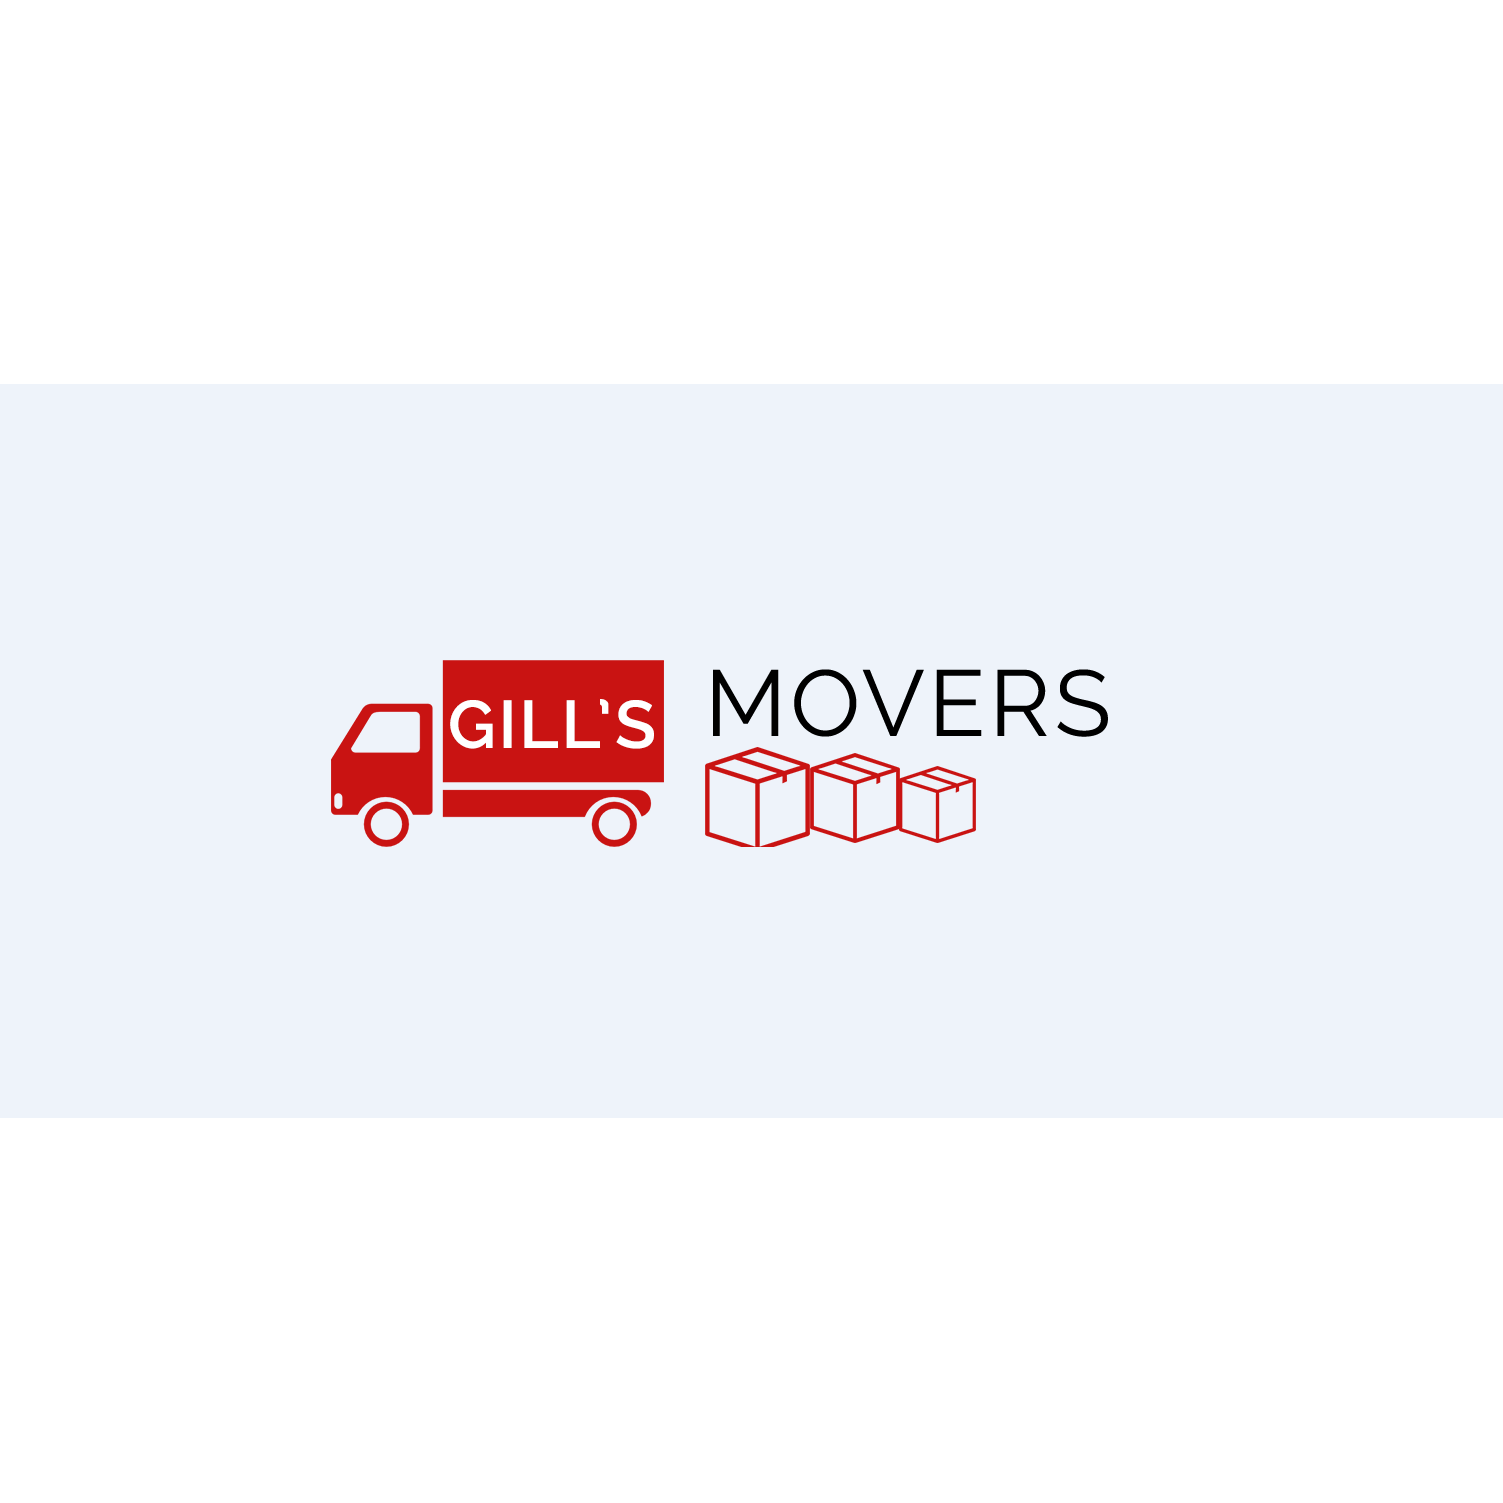 Gills Movers